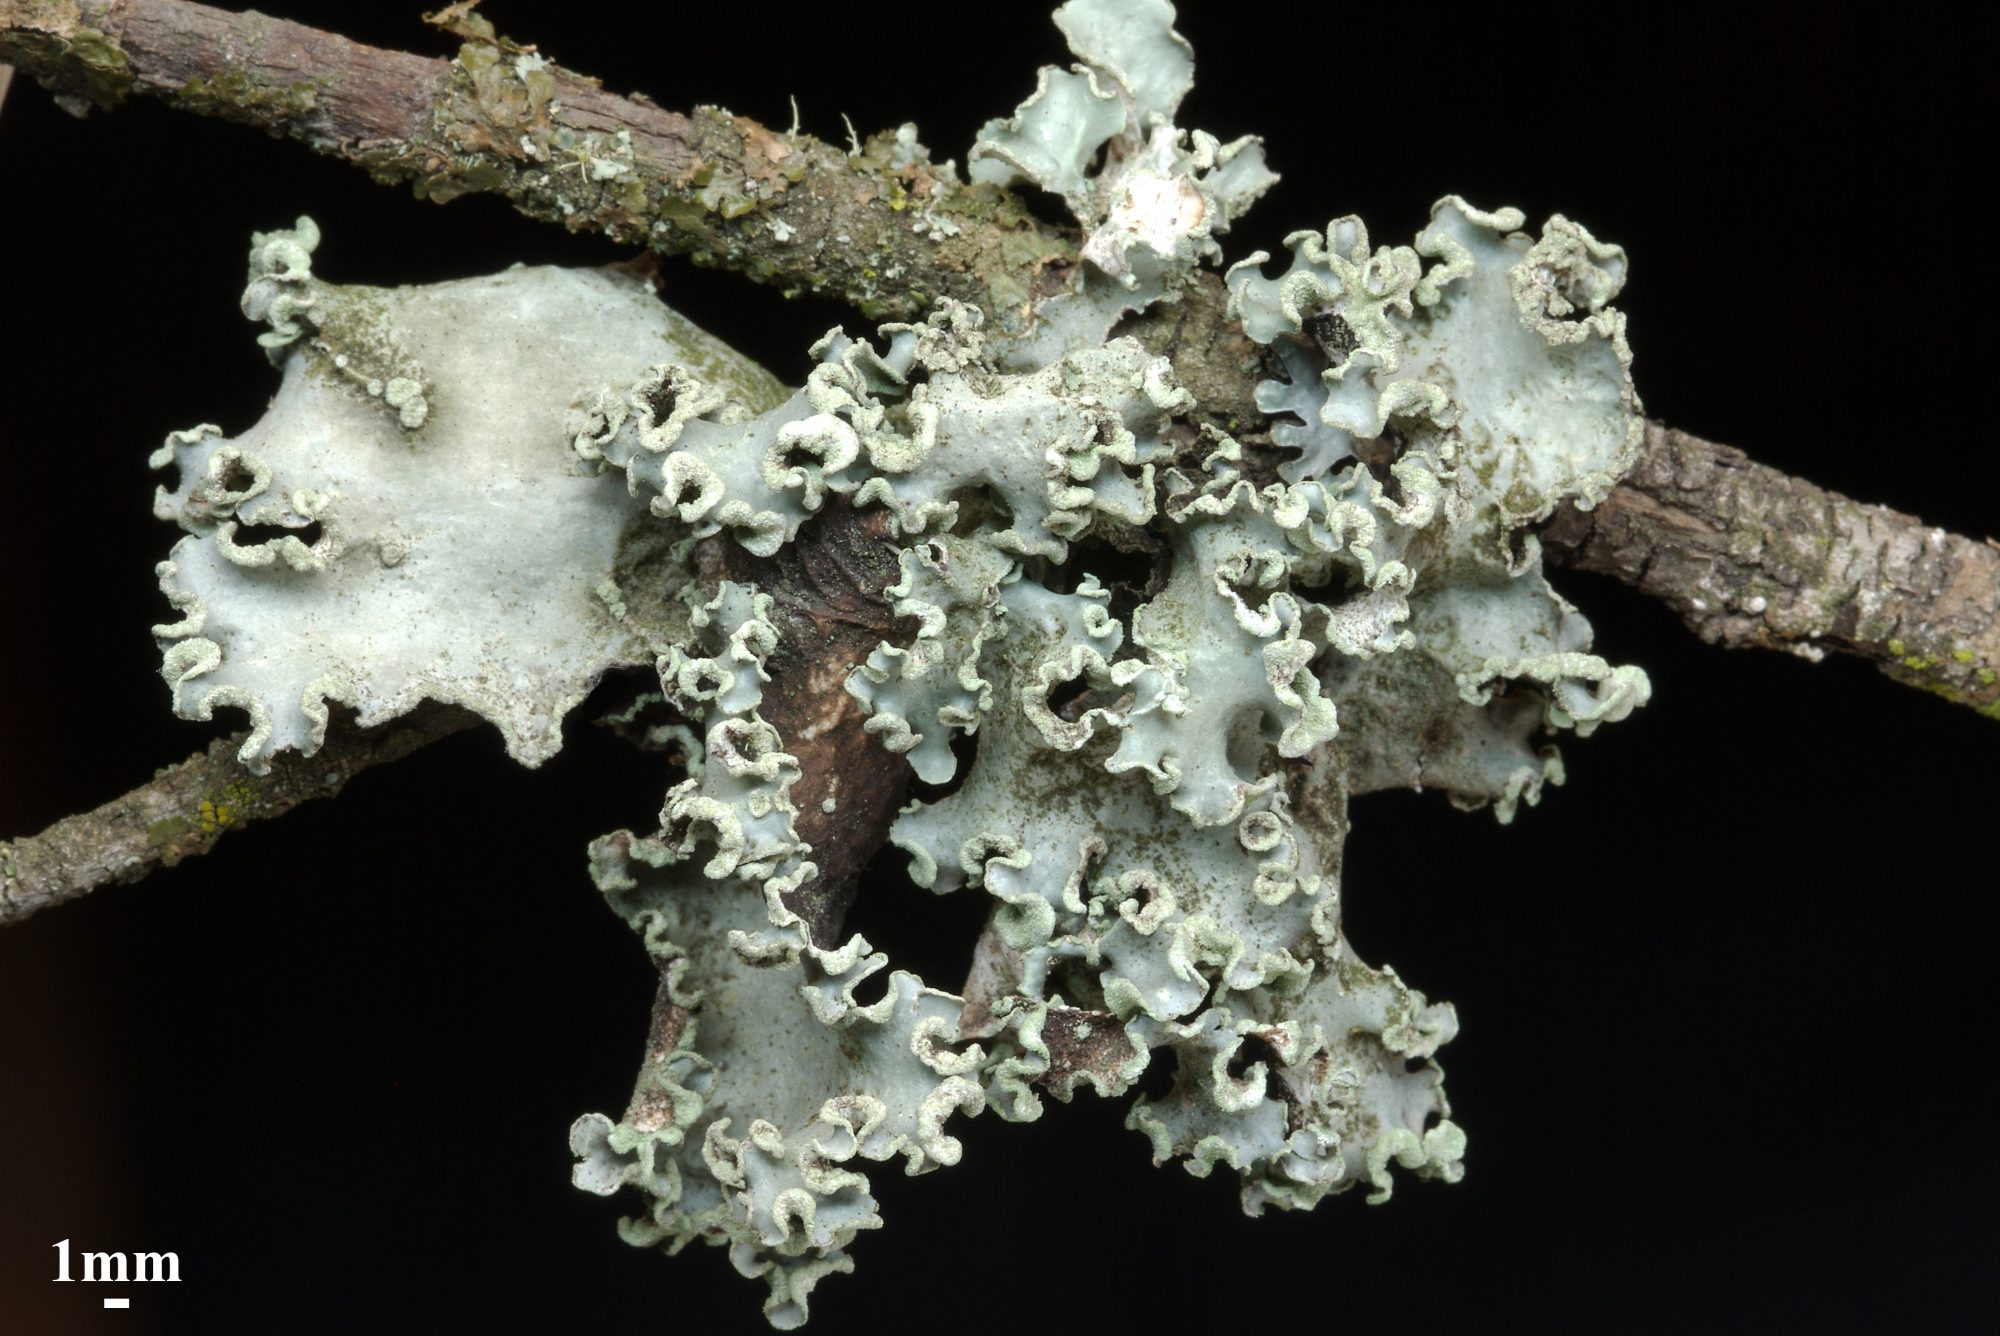 Image: ruffled edge green lichen on a twig